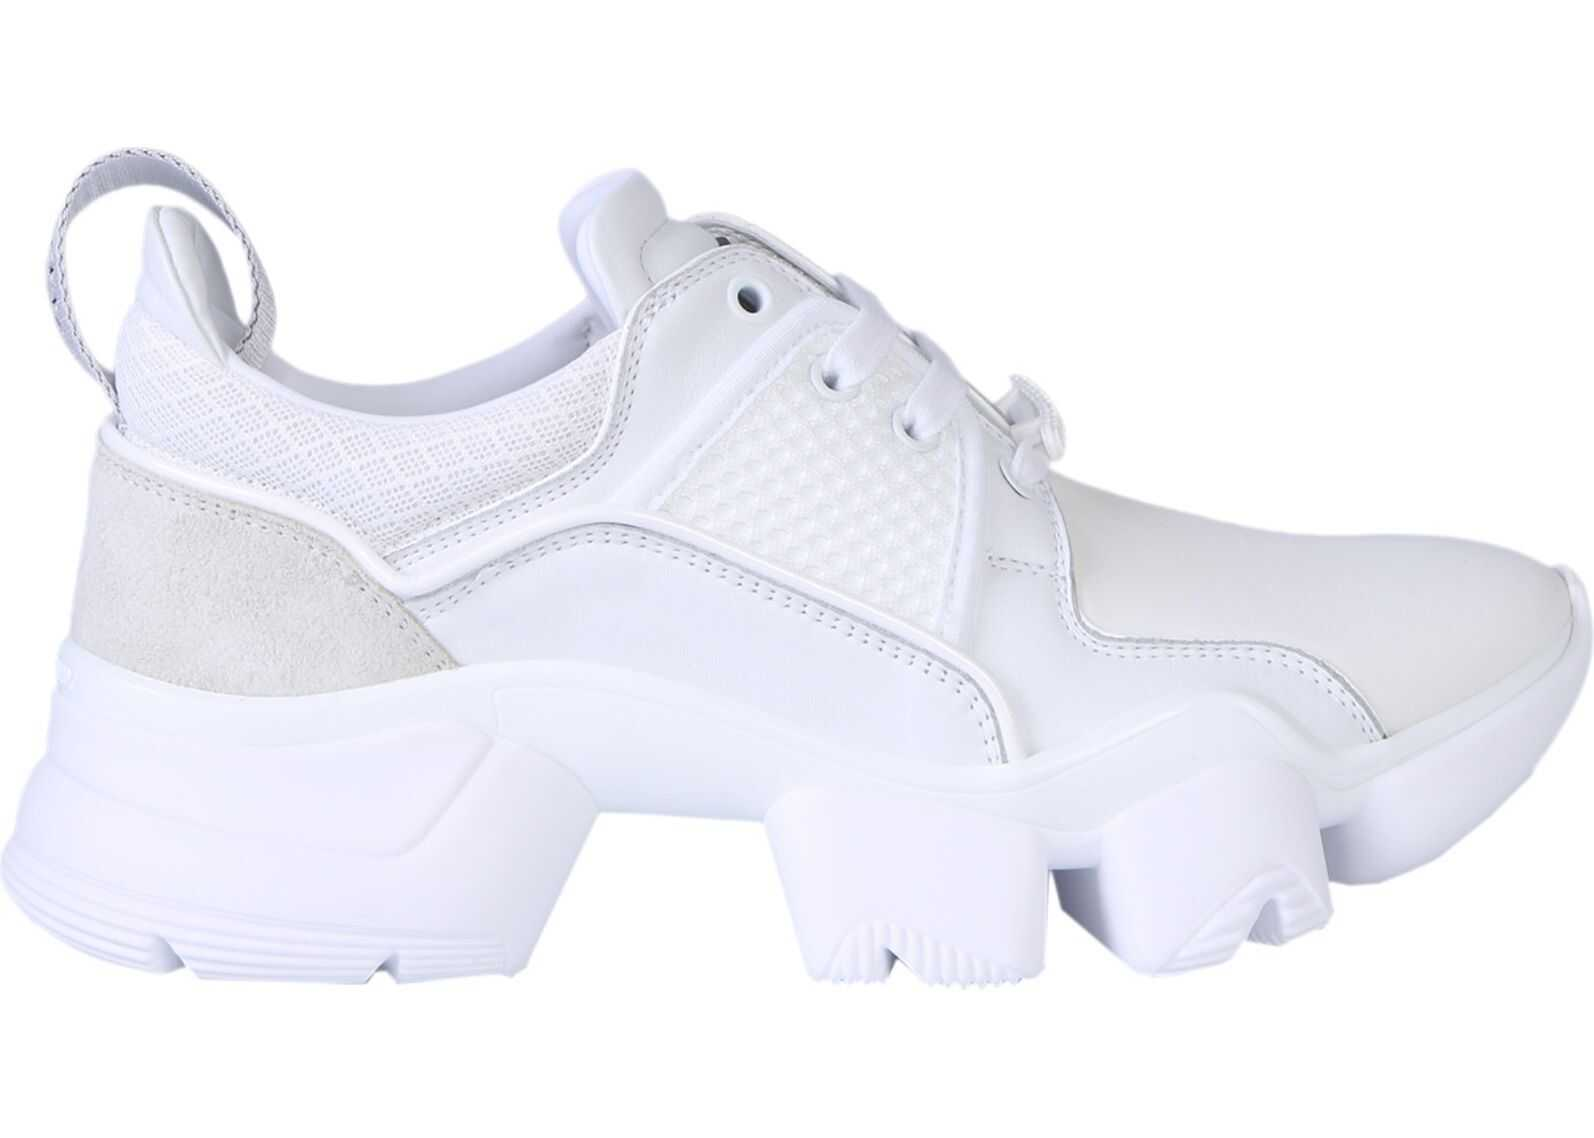 Givenchy Jaw Low Sneakers WHITE